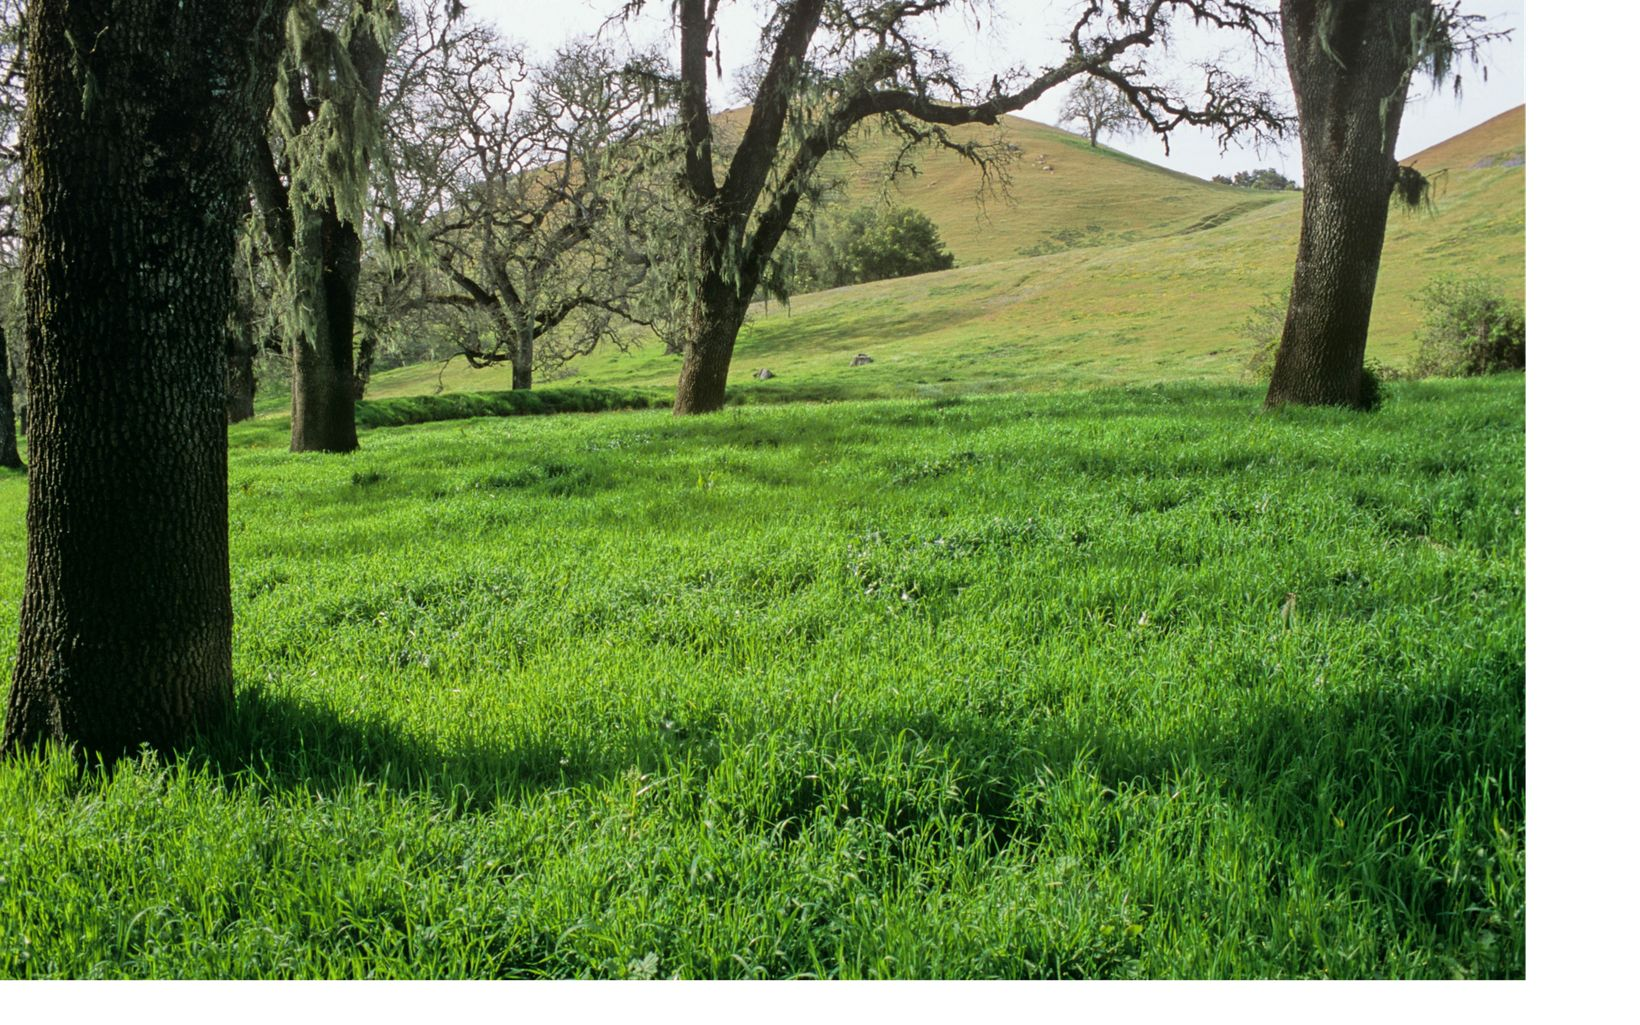 Oak woodlands cover grassy hills at this 11,000-acre working cattle ranch that has been minimally developed, leaving much of the ecosystem intact.